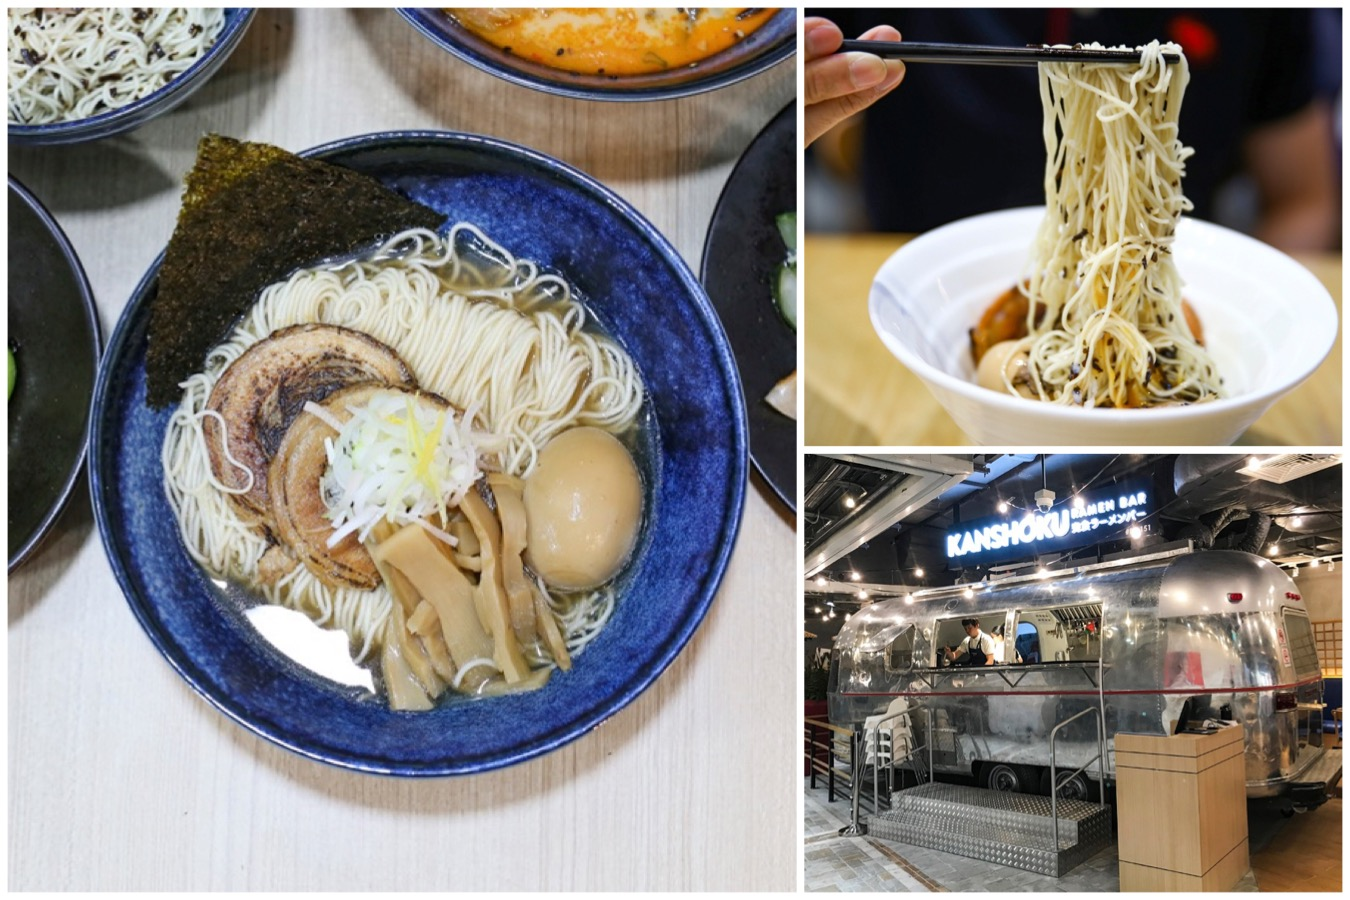 Kanshoku Ramen Bar Northpoint City – Offering Yuzu And Truffle Ramen. Look Out For The Food Truck